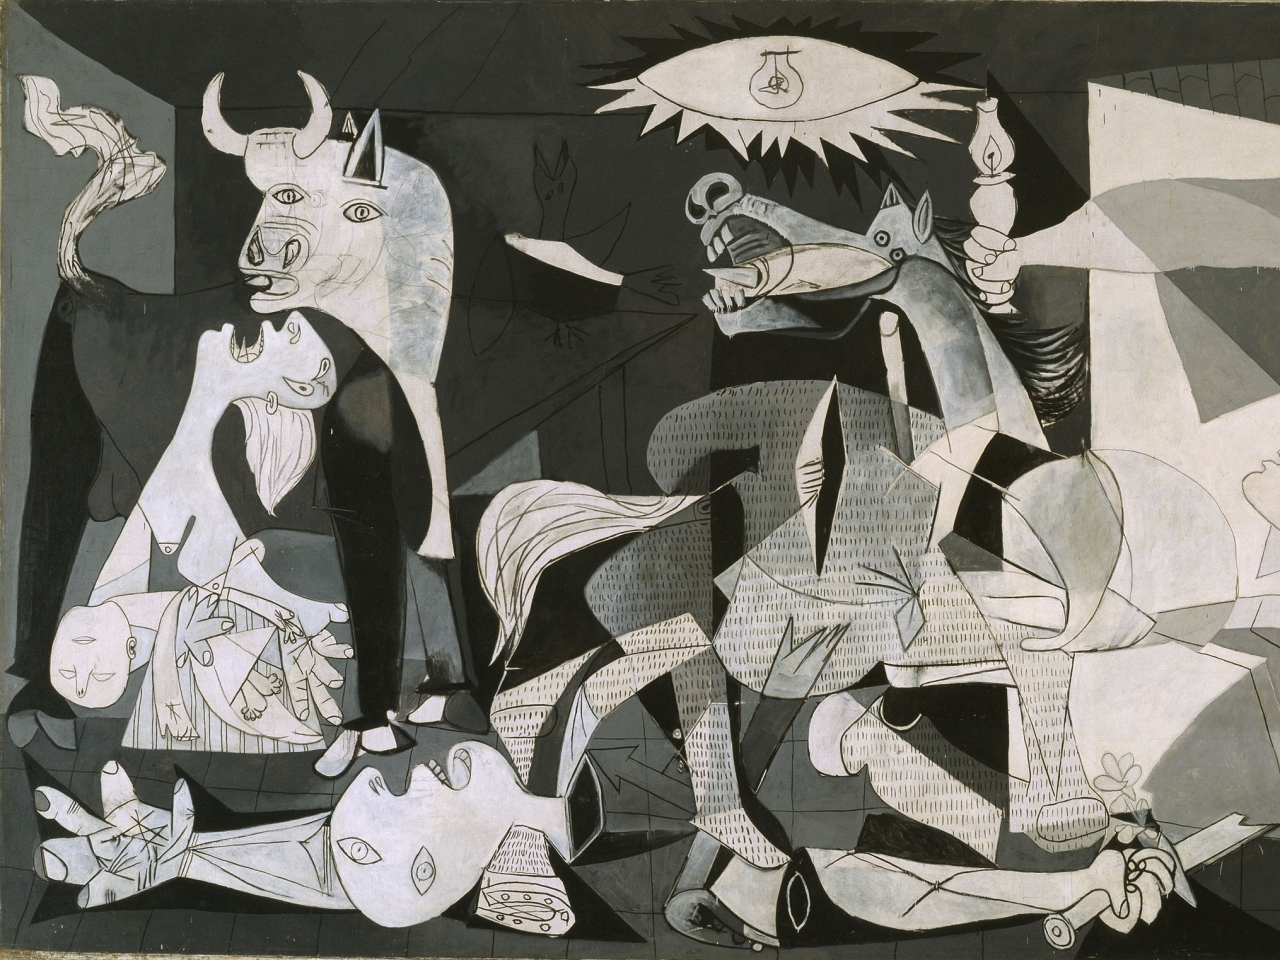 Wallpapers Download 1280x960 pablo picasso guernica Wallpaper 1280x960